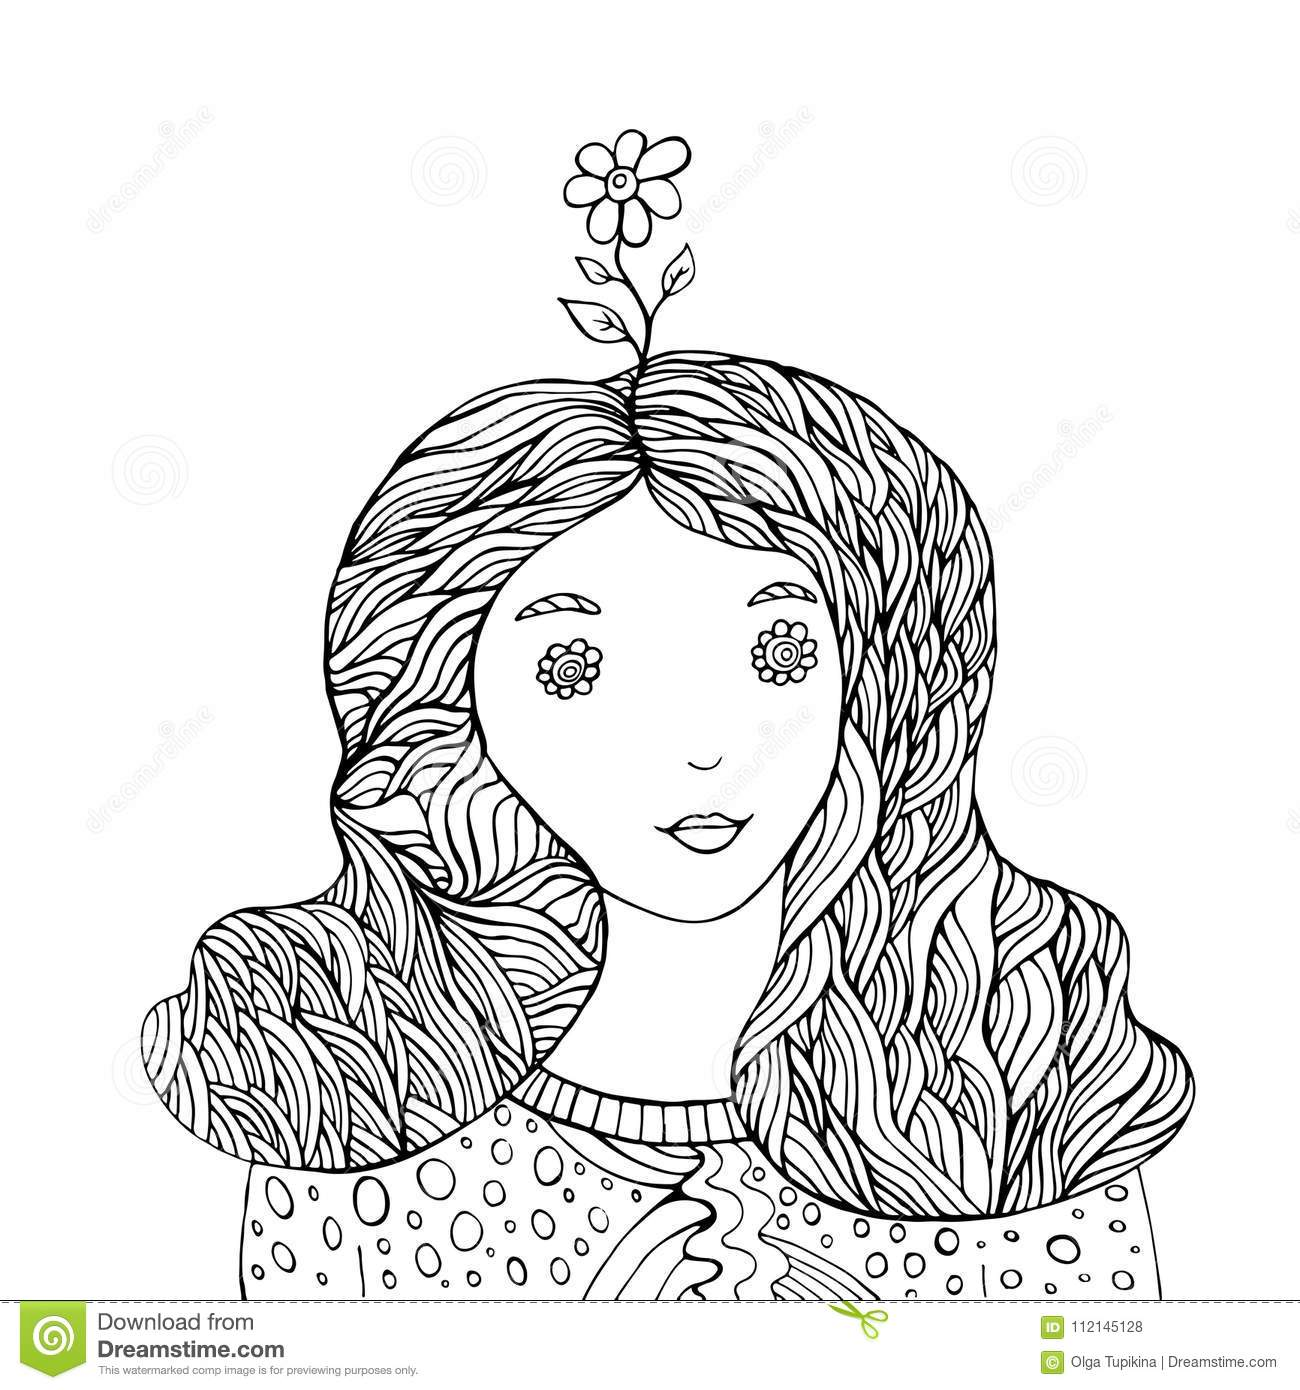 Flower Girl Fantasy Coloring Book Stock Vector - Illustration of ...